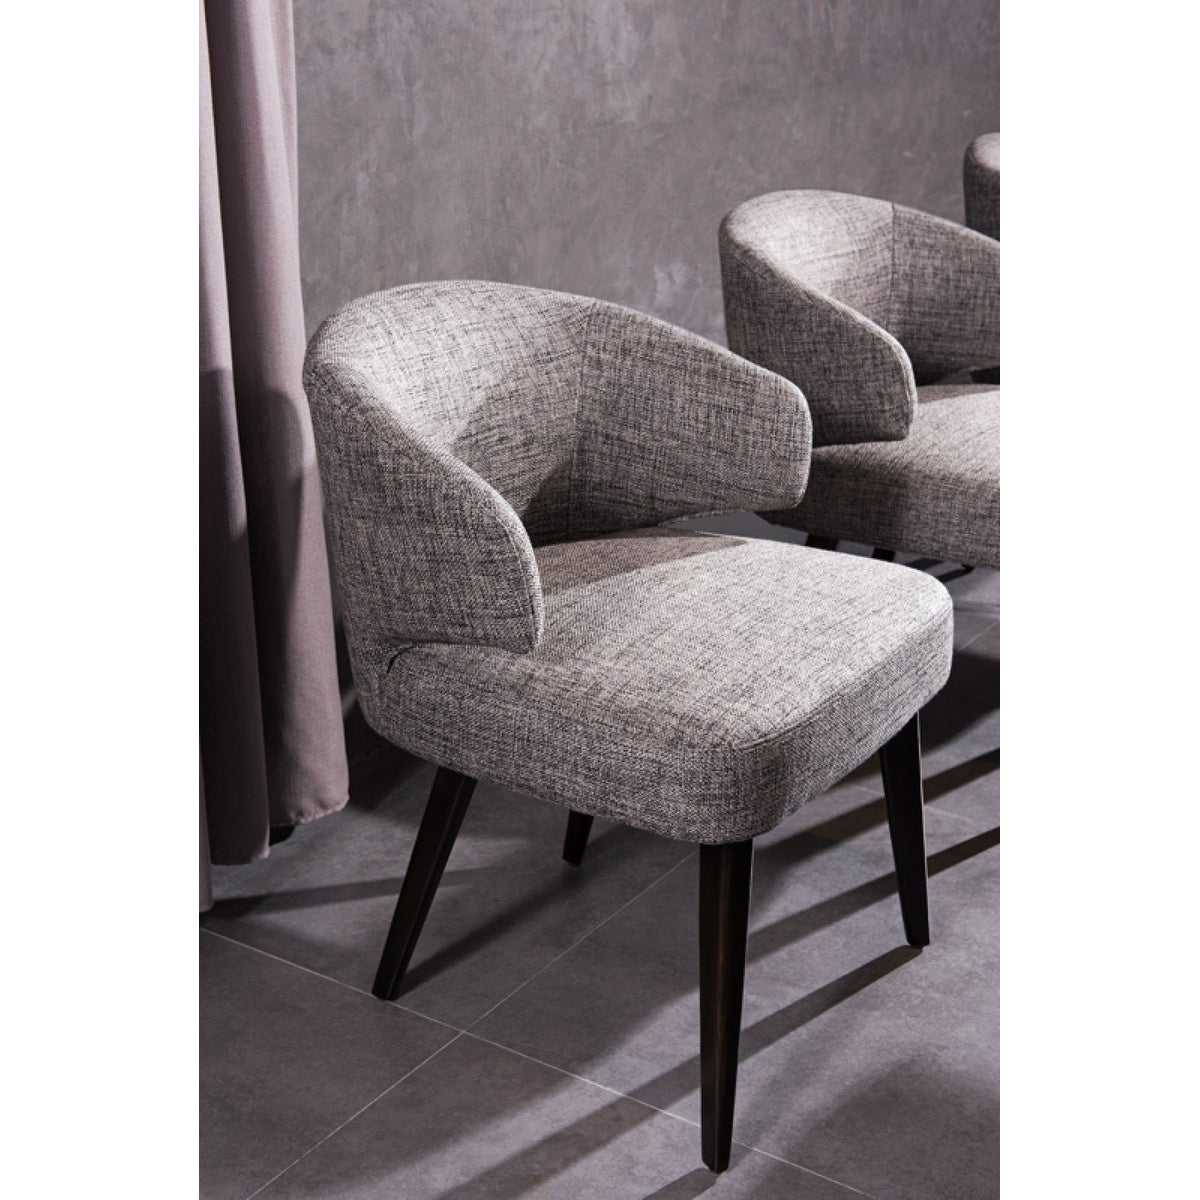 Modrest Carlton Grey Fabric Dining Chair Intended For Carlton Wood Leg Upholstered Dining Chairs (View 6 of 15)